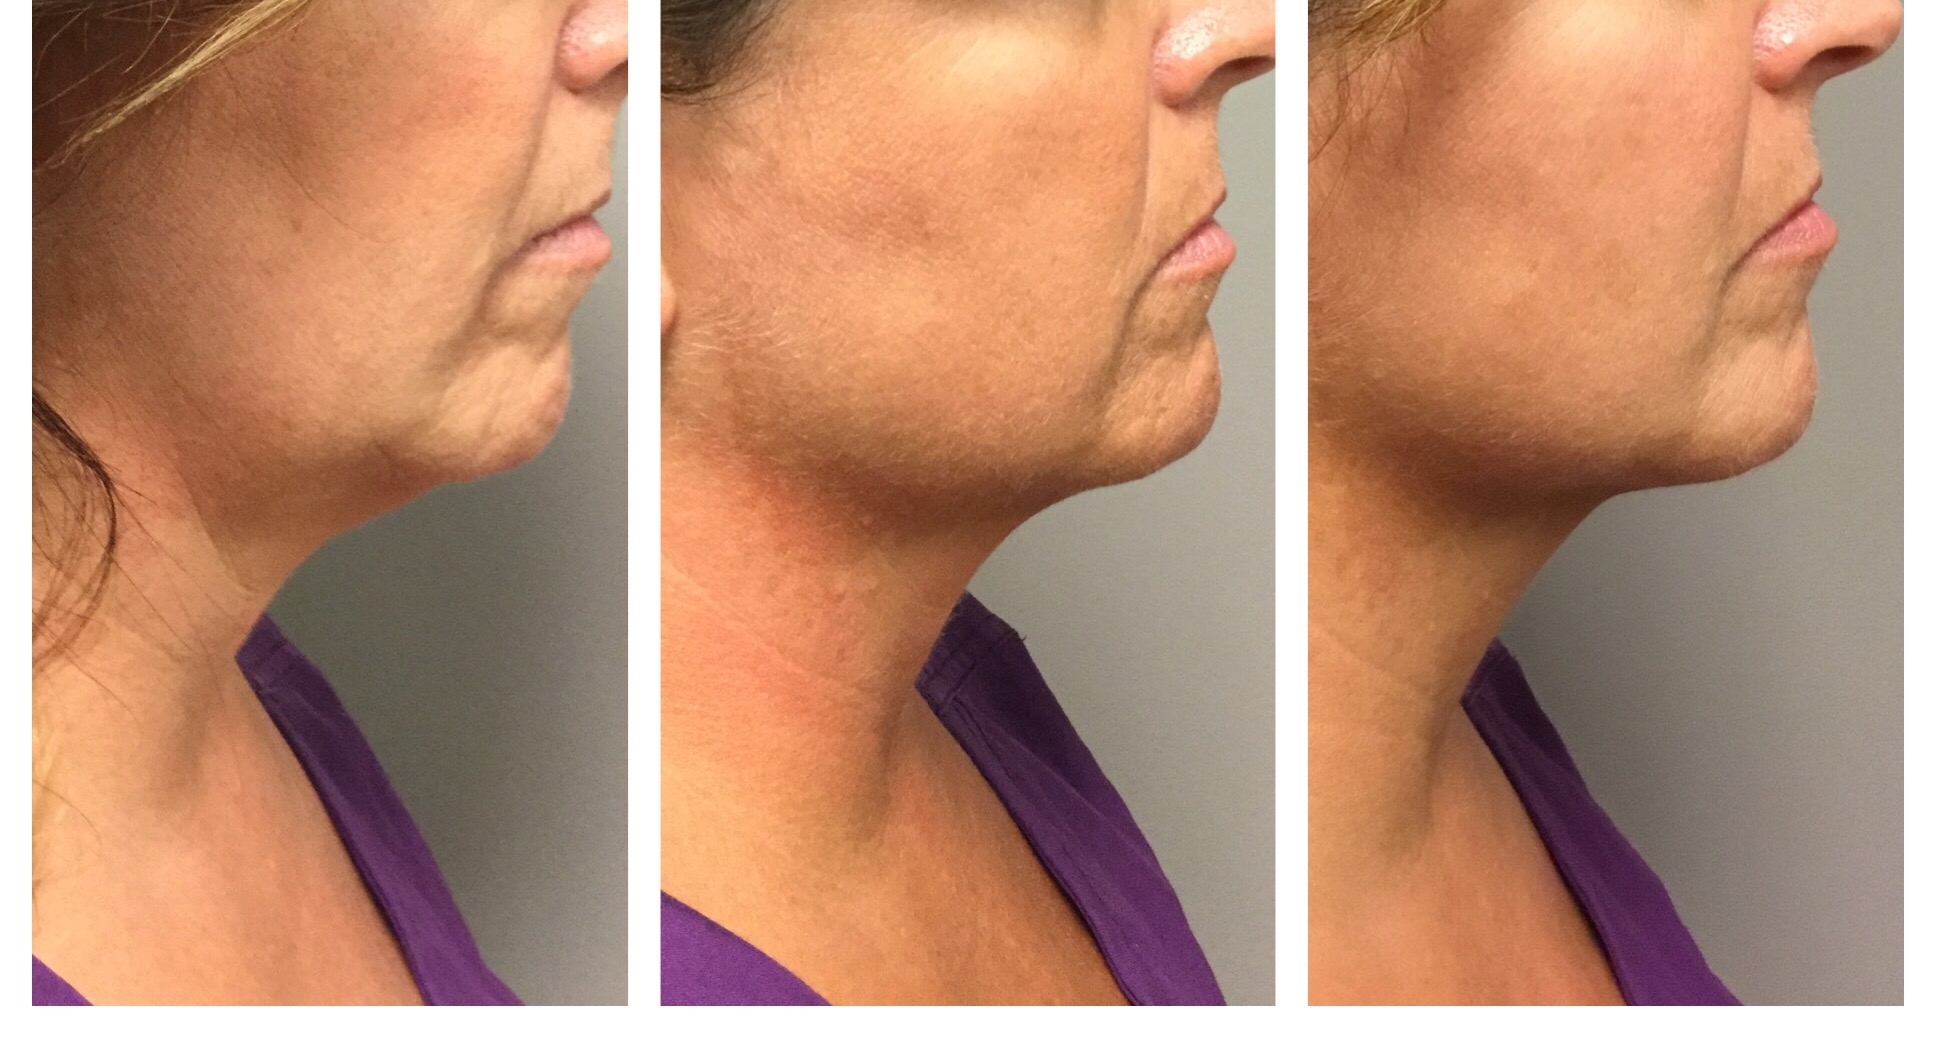 Kybella® before & after - Injected by Terry Selgo, R.N. / 2 session of Kybella®